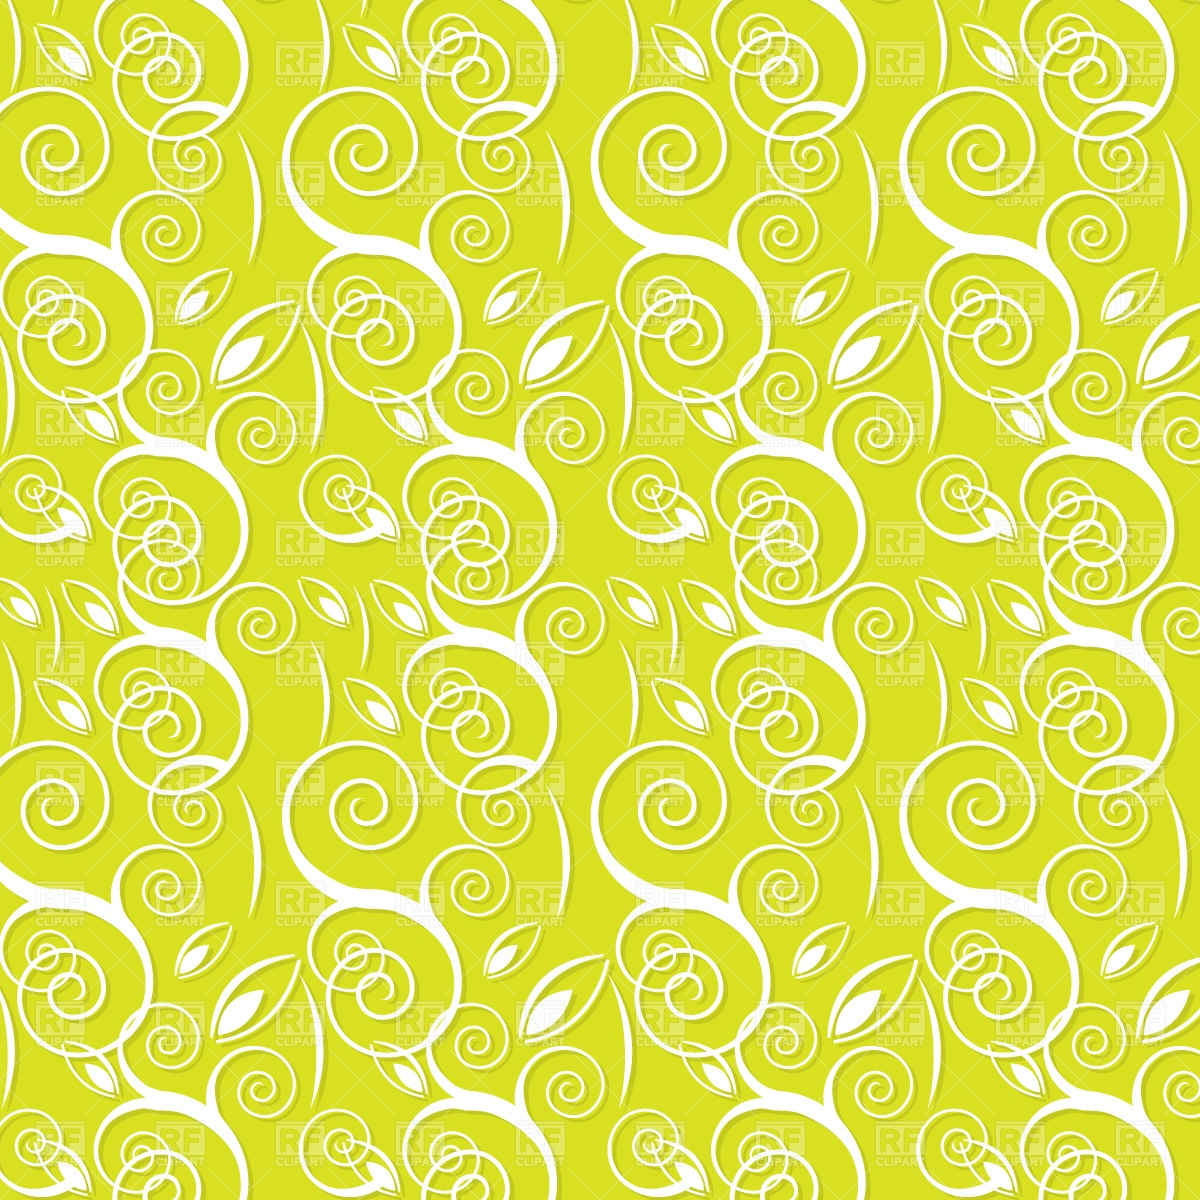 Background Patterns Clipart.